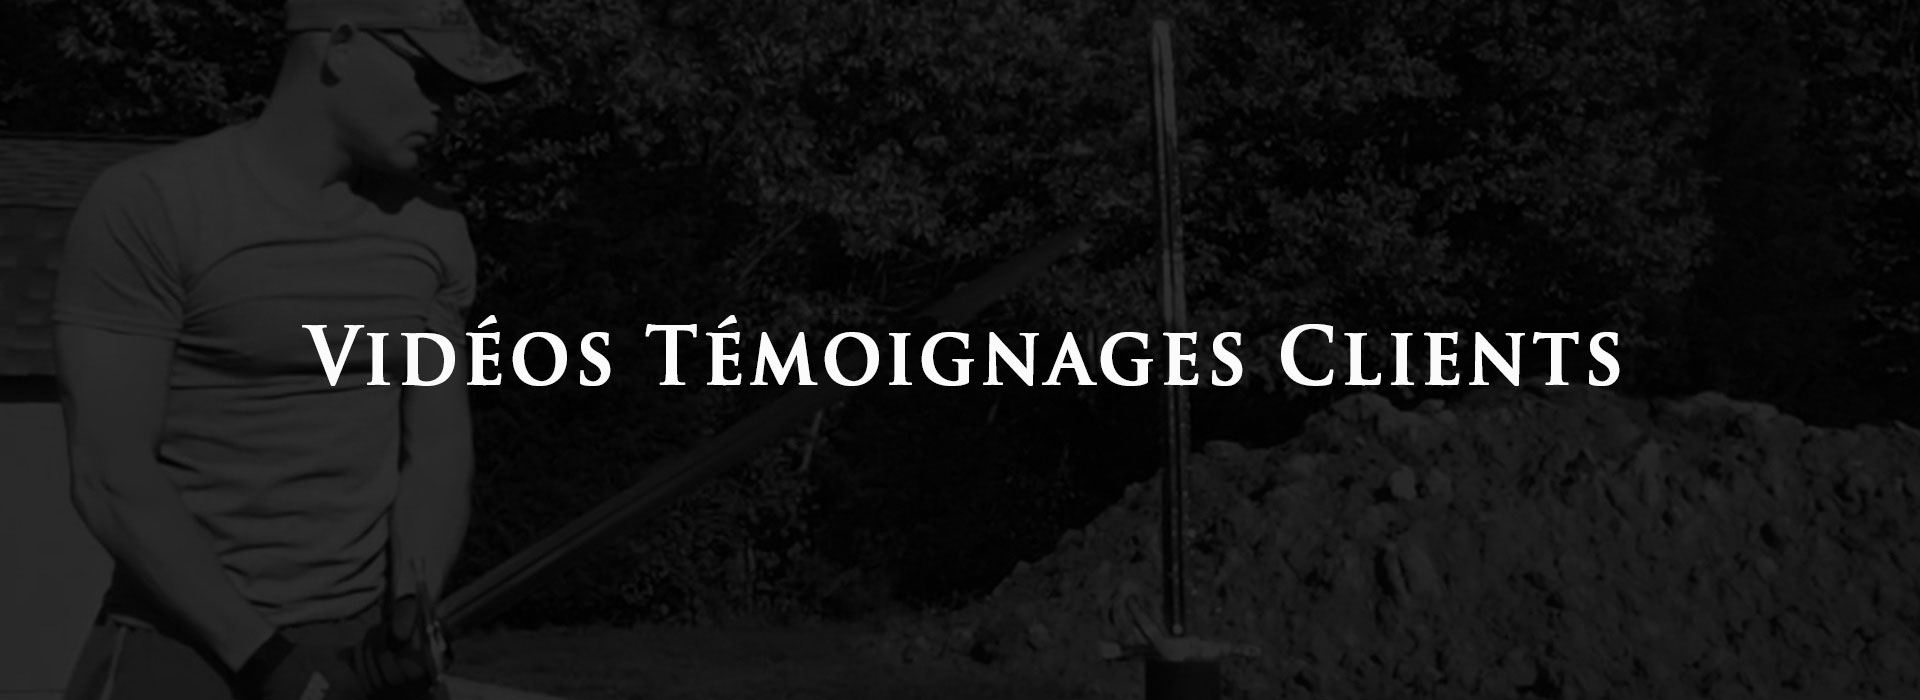 videos-temoignages-clients-banniere